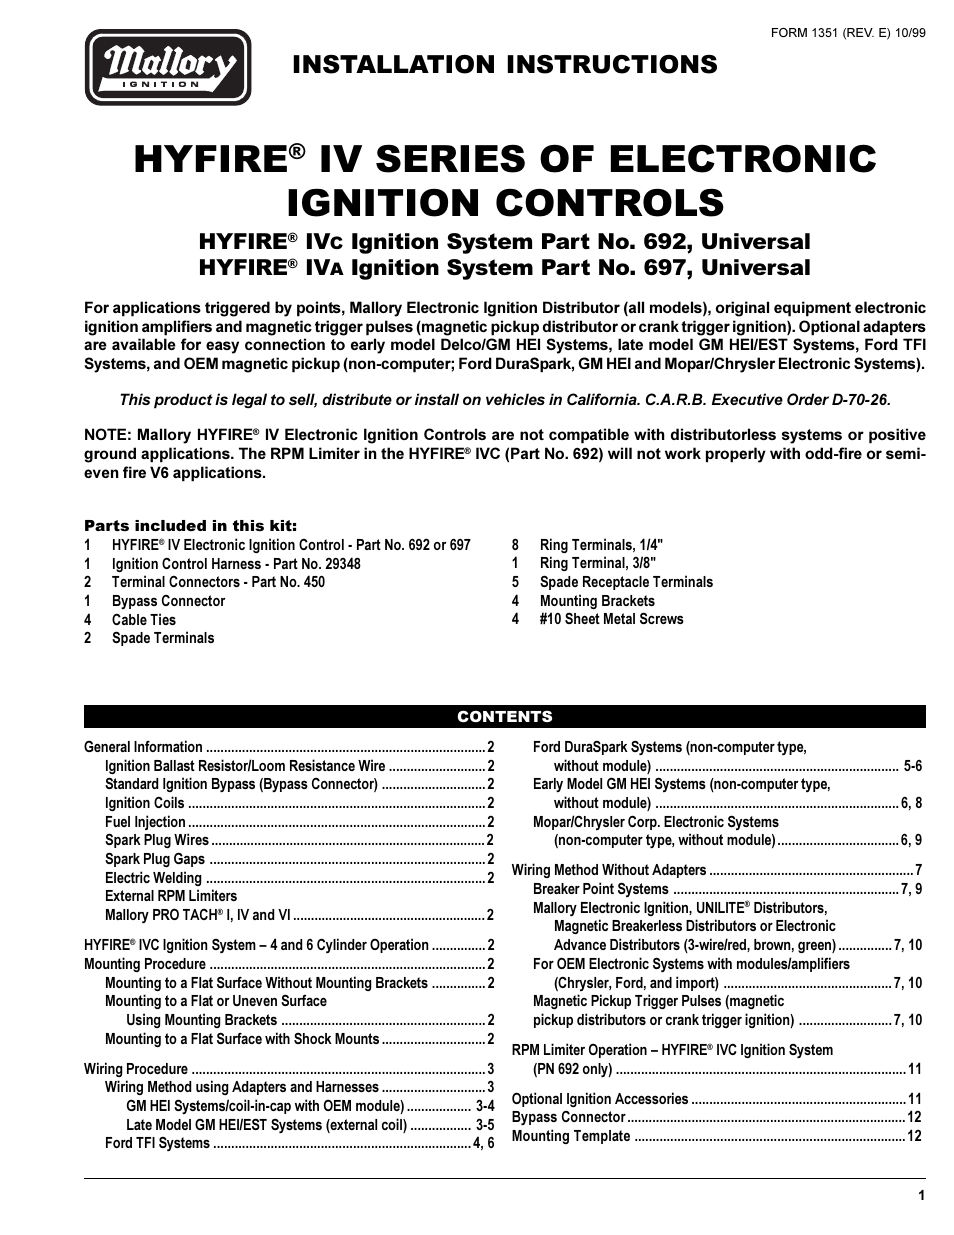 Mallory Ignition Hyfire Iv Series System 692 697 Early Gm Hei Wiring Illustration User Manual 12 Pages